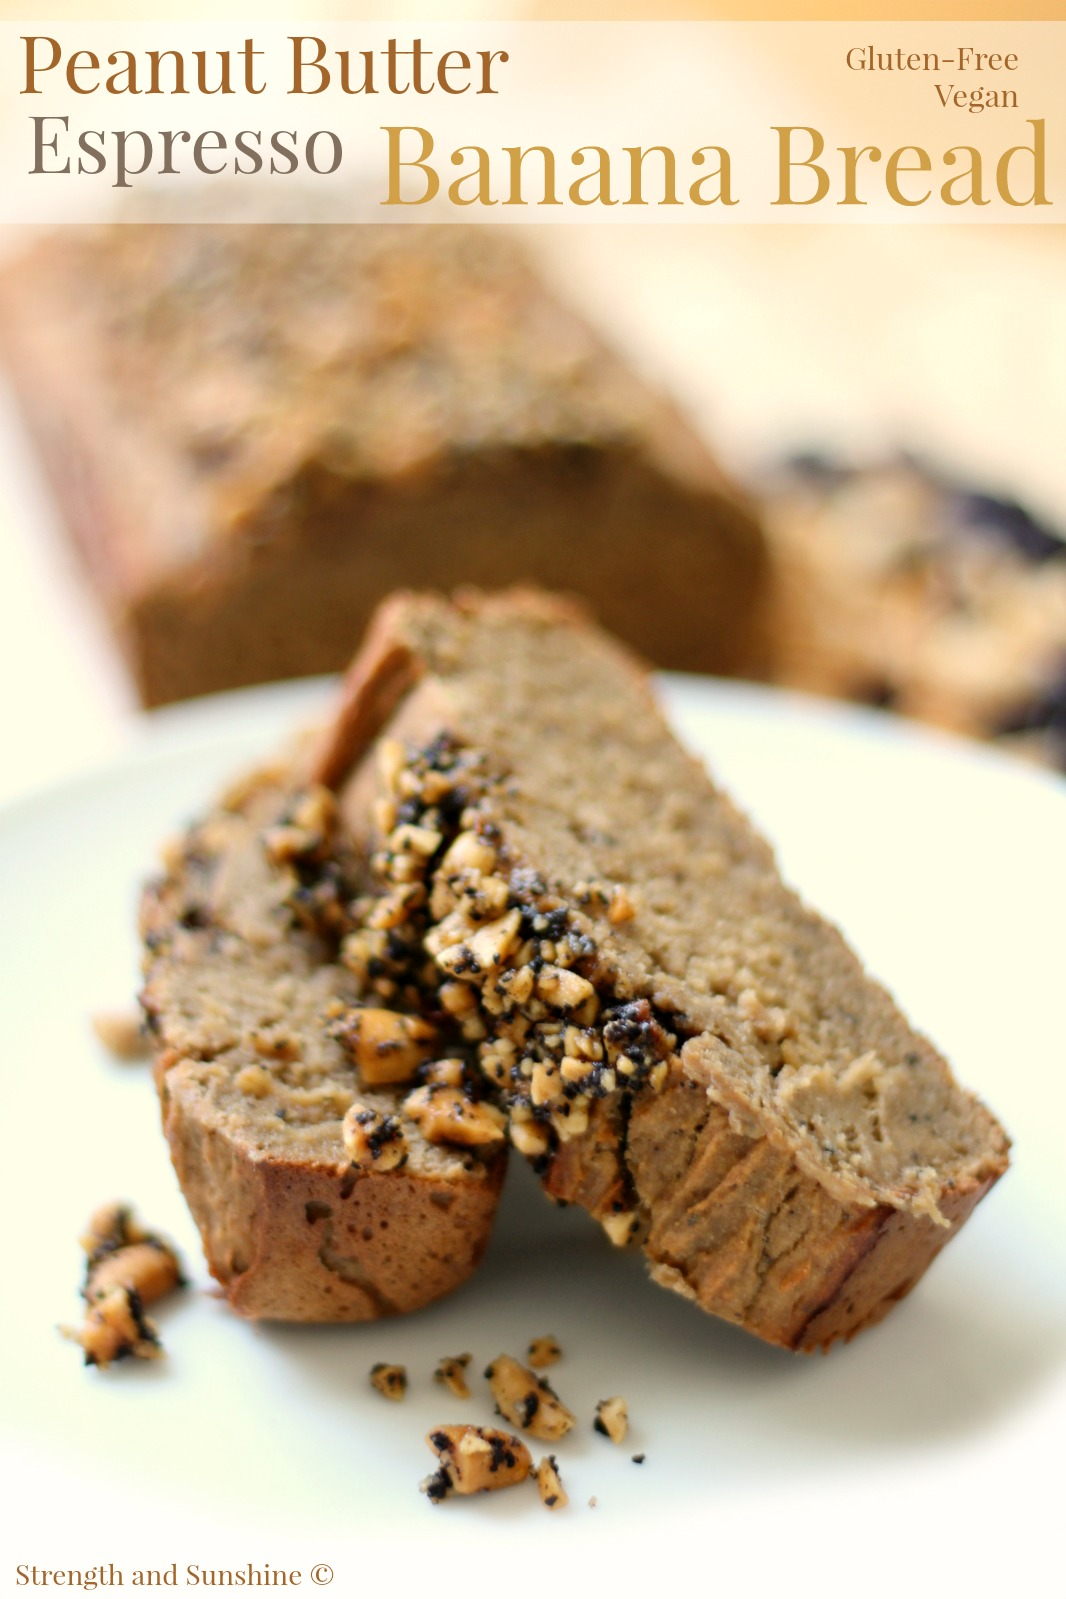 Peanut Butter Espresso Banana Bread | Strength and Sunshine @RebeccaGF666 More than just banana bread. A peanut butter espresso banana bread, moist, soft, secretly nutritious, gluten-free, and vegan. A subtly sweet, buttery, quick bread to make the perfect healthy breakfast, snack, or dessert recipe!